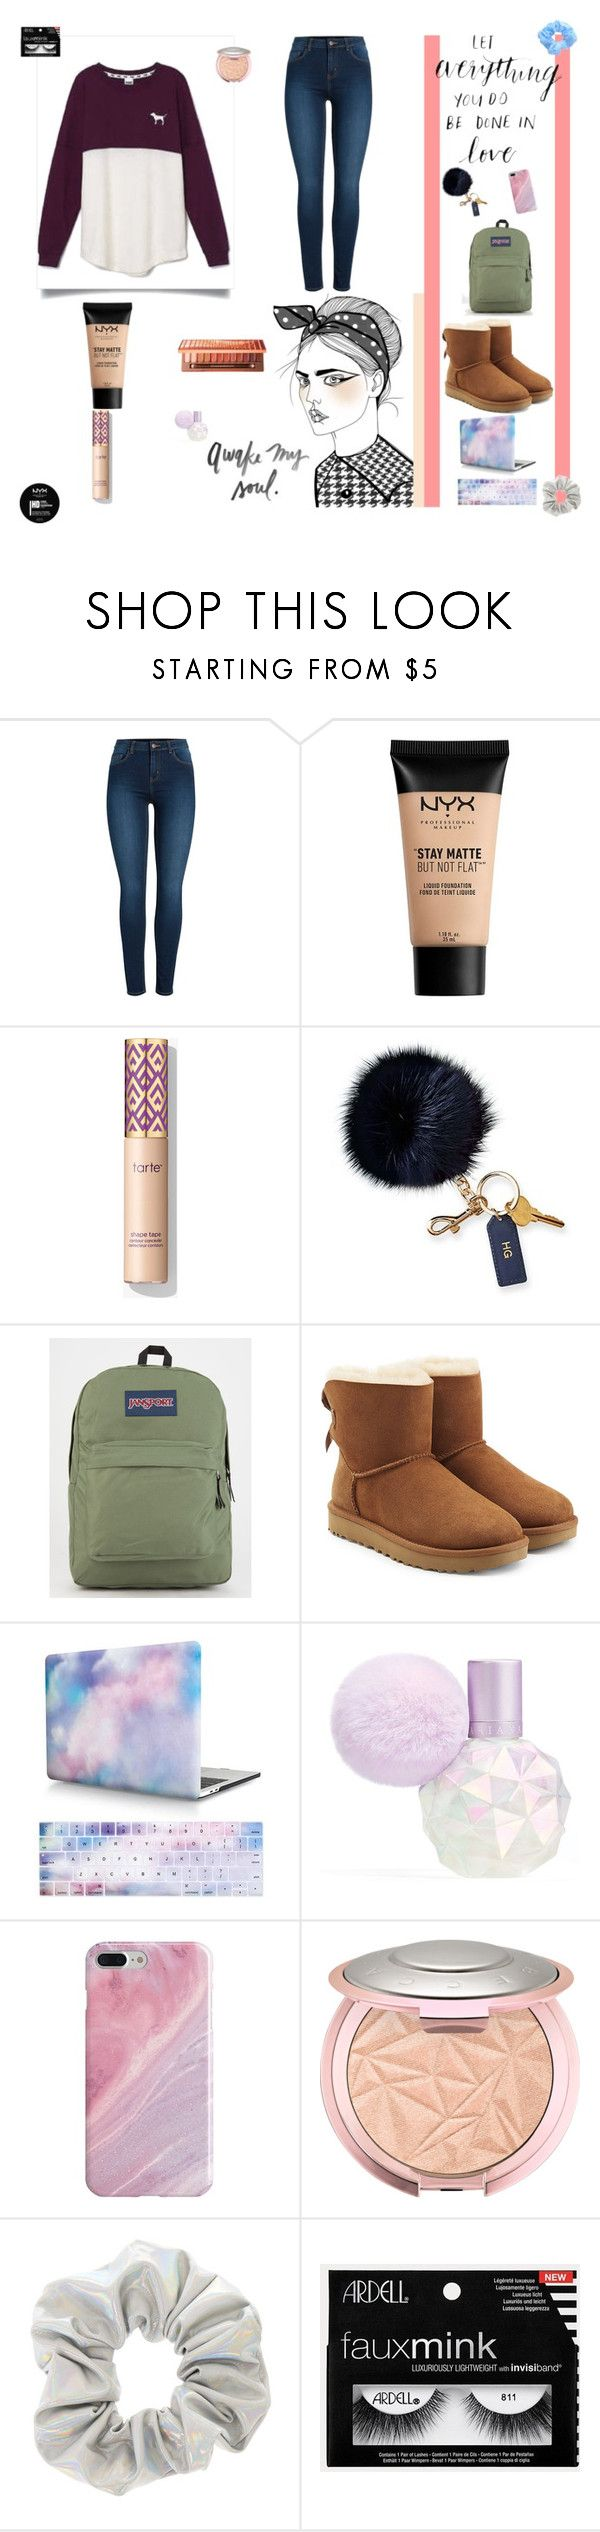 """Untitled #2"" by that-cutie-named-emily on Polyvore featuring Pieces, Victoria's Secret, NYX, Mark & Graham, JanSport, UGG and Recover"